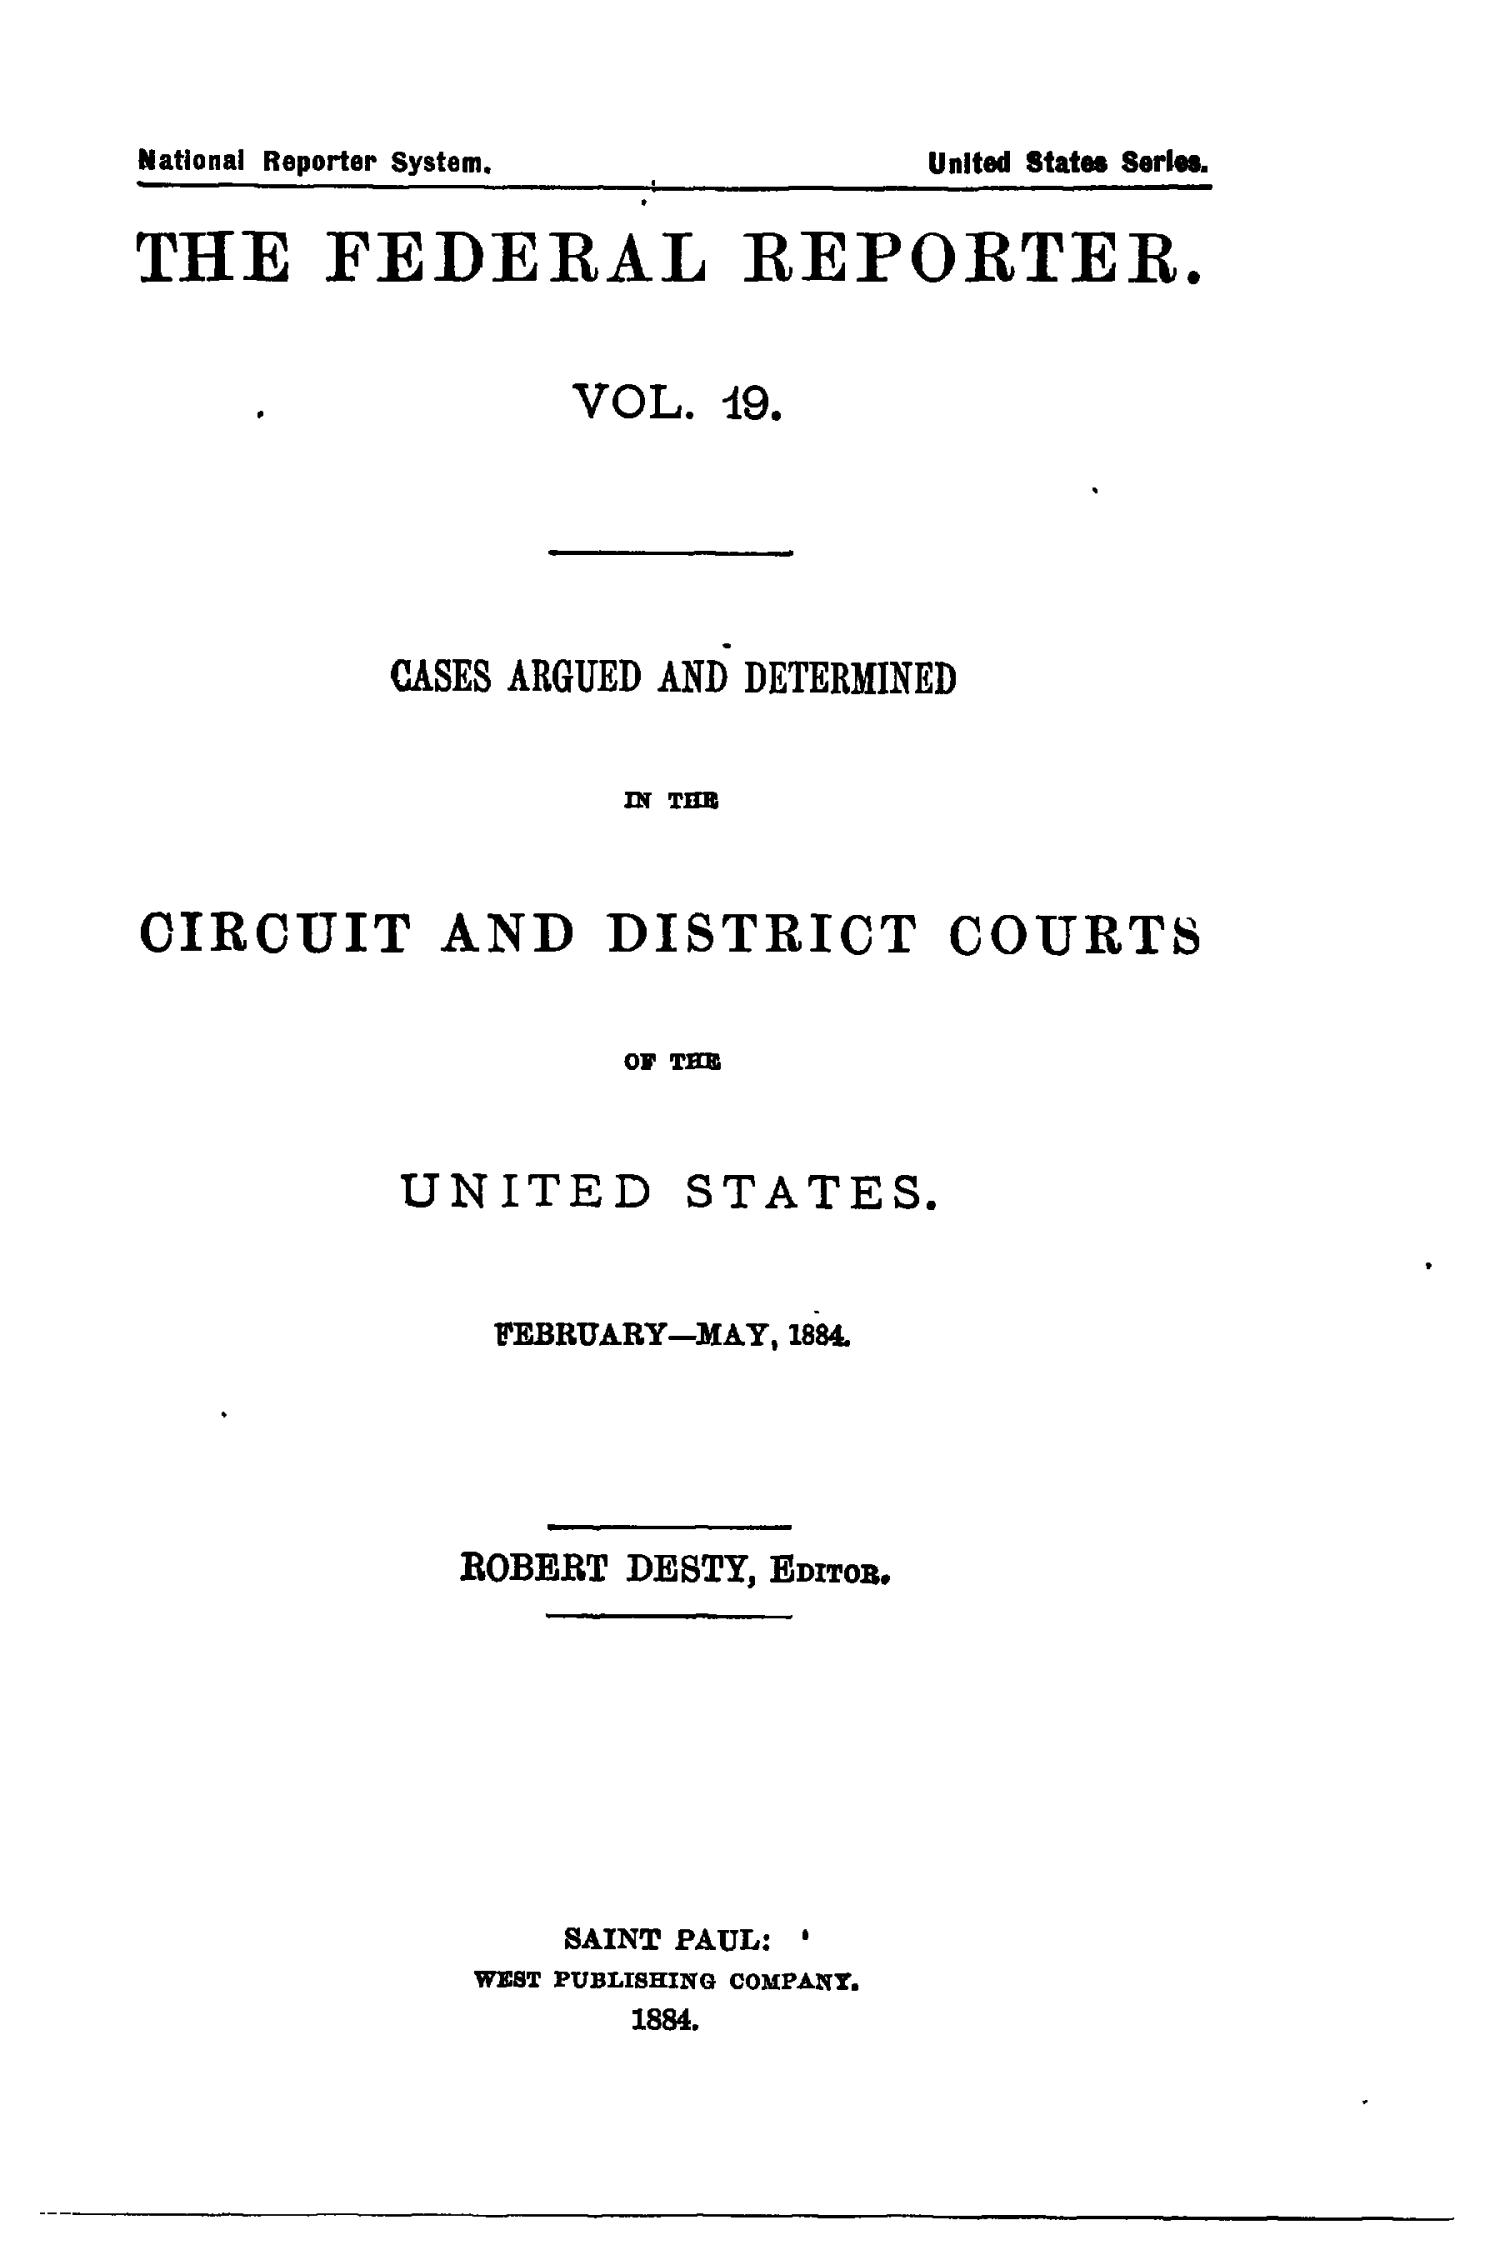 The Federal Reporter. Volume 19: Cases Argued and Determined in the Circuit and District Courts of the United States. February-May, 1884.                                                                                                      Title Page